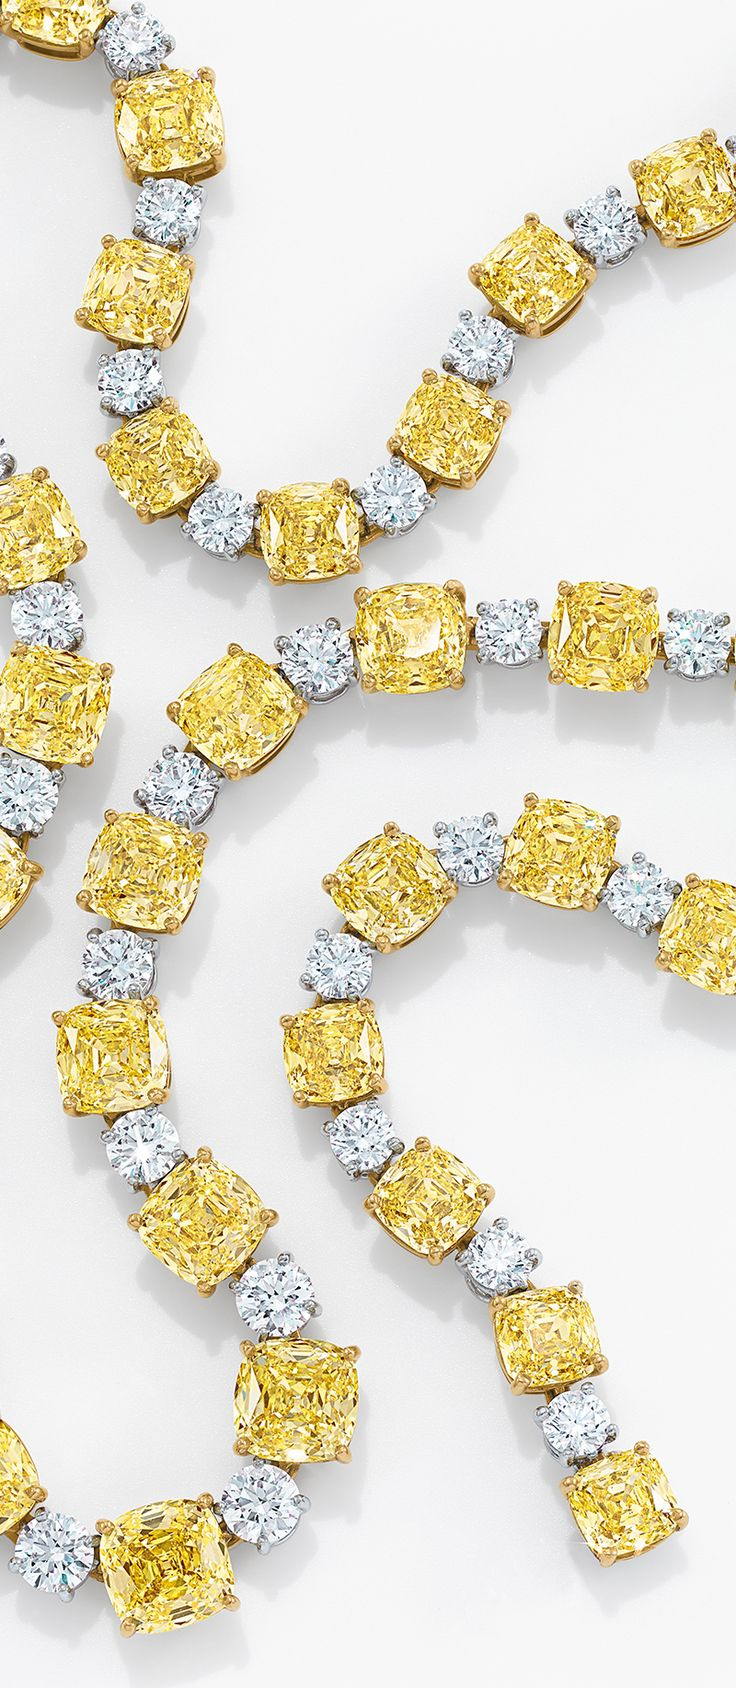 Tiffany Yellow Diamonds are as rare as the woman who wears them. Capturing the warmth and splendor of the sun, this captivating stone seems to glow from within.